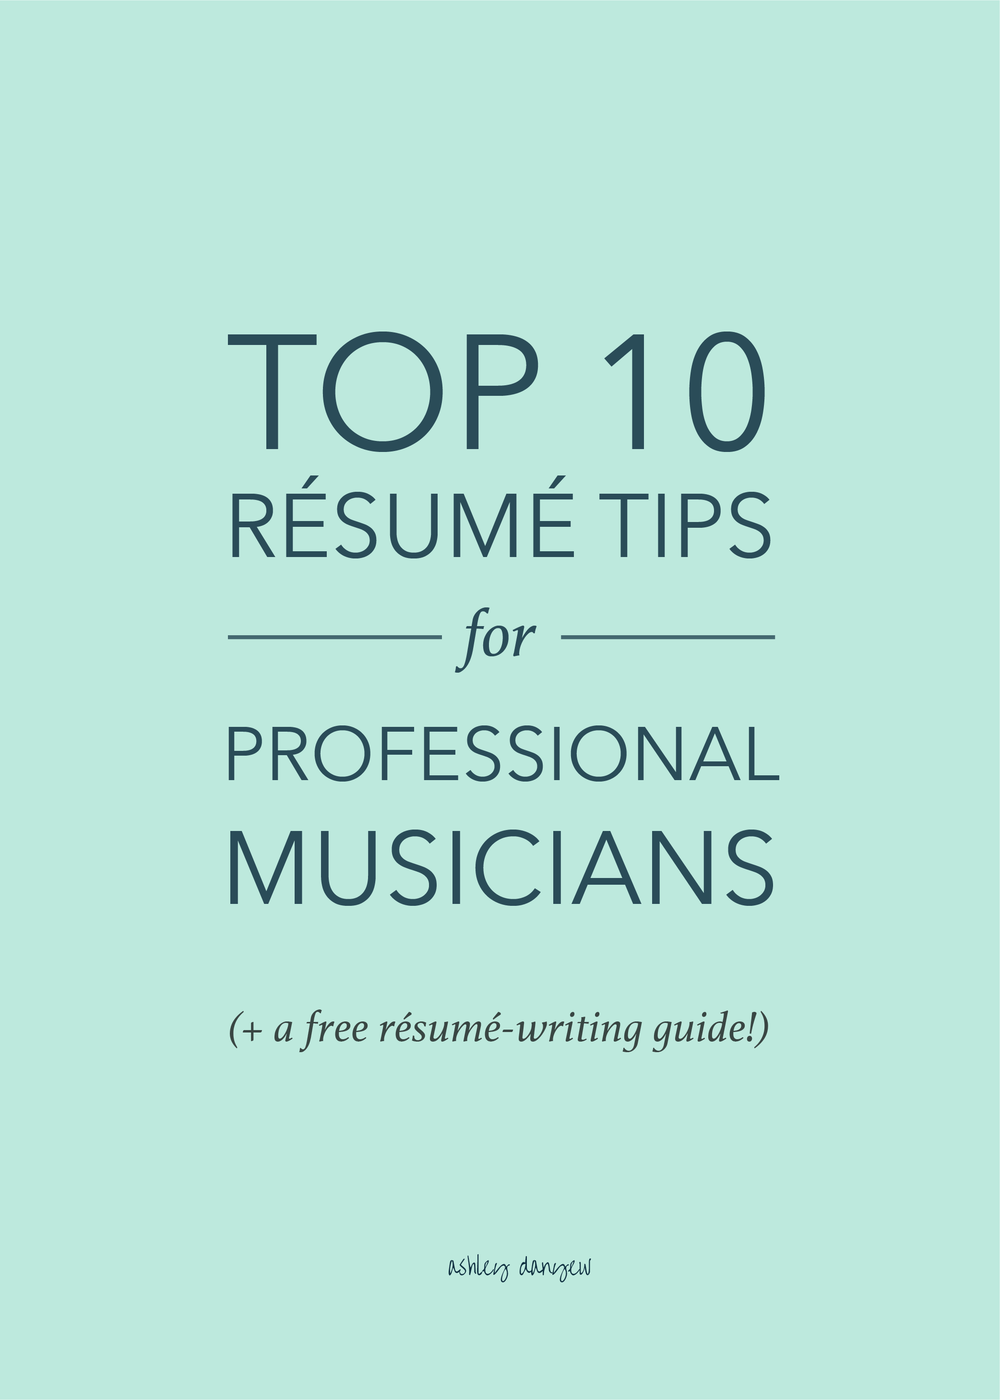 Top 10 Resume Tips For Professional Musicians 05.png  Resume Tips